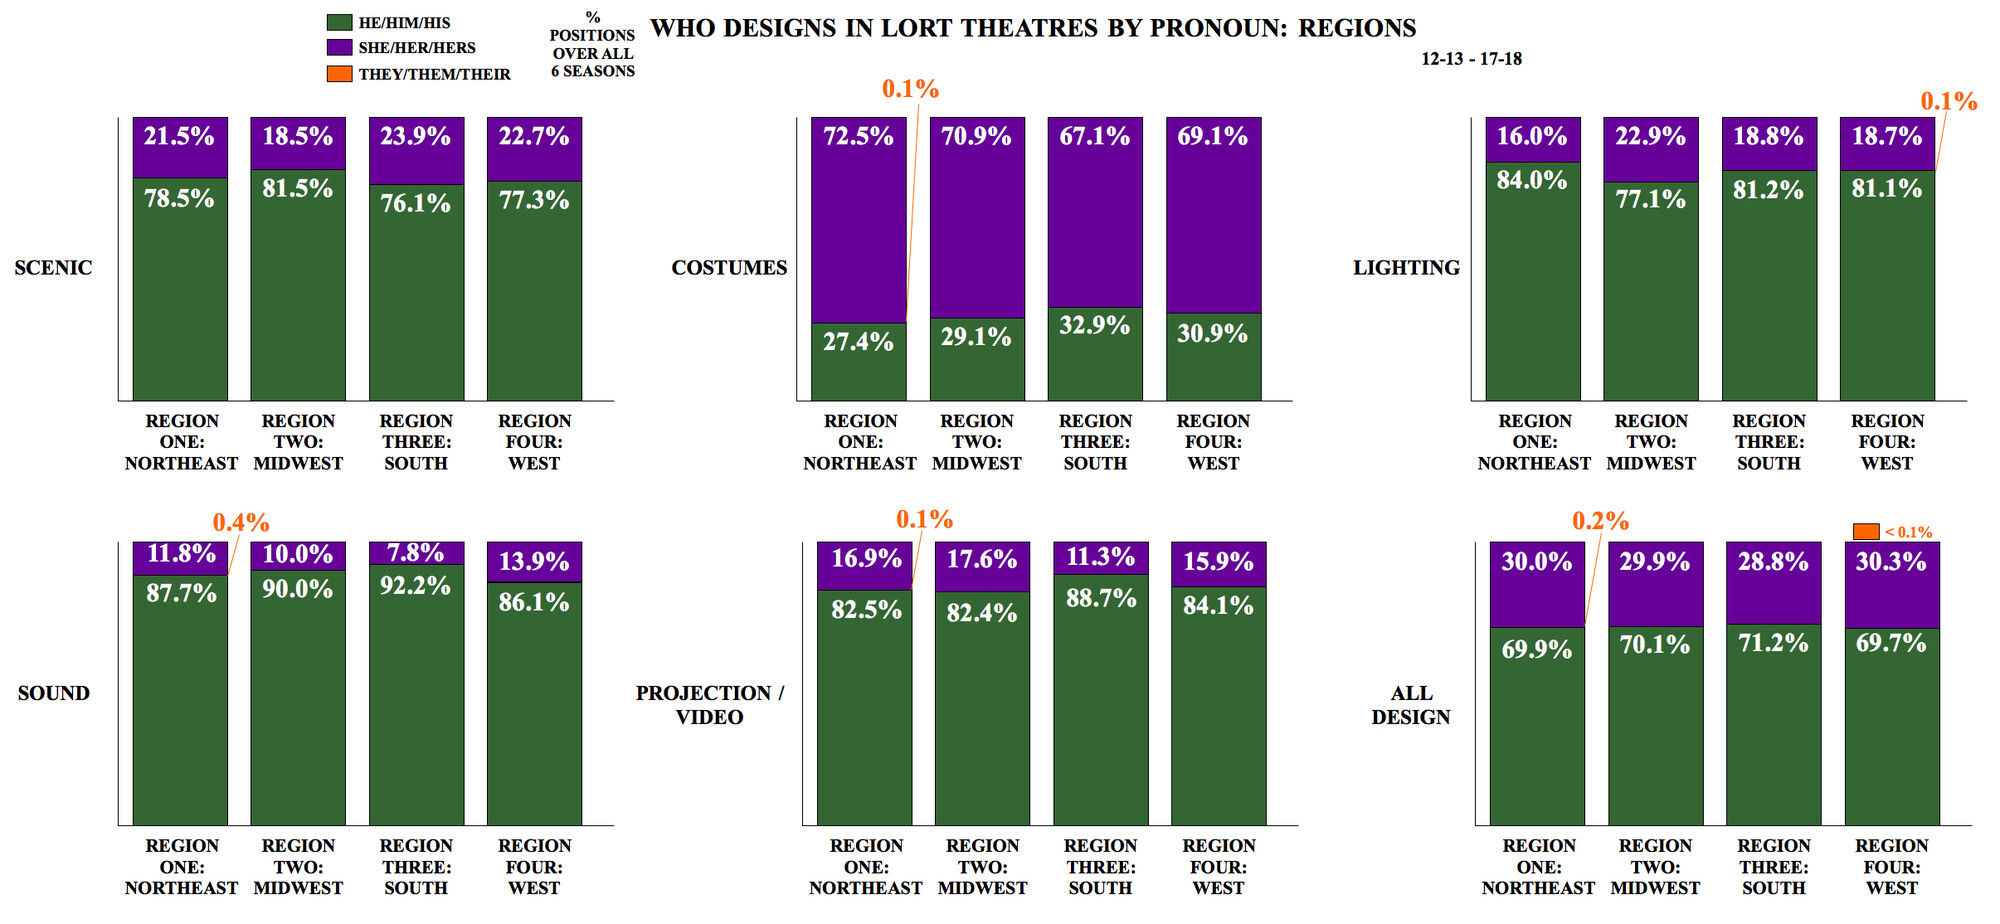 Who Designs in LORT Theatres by Pronoun: Regions